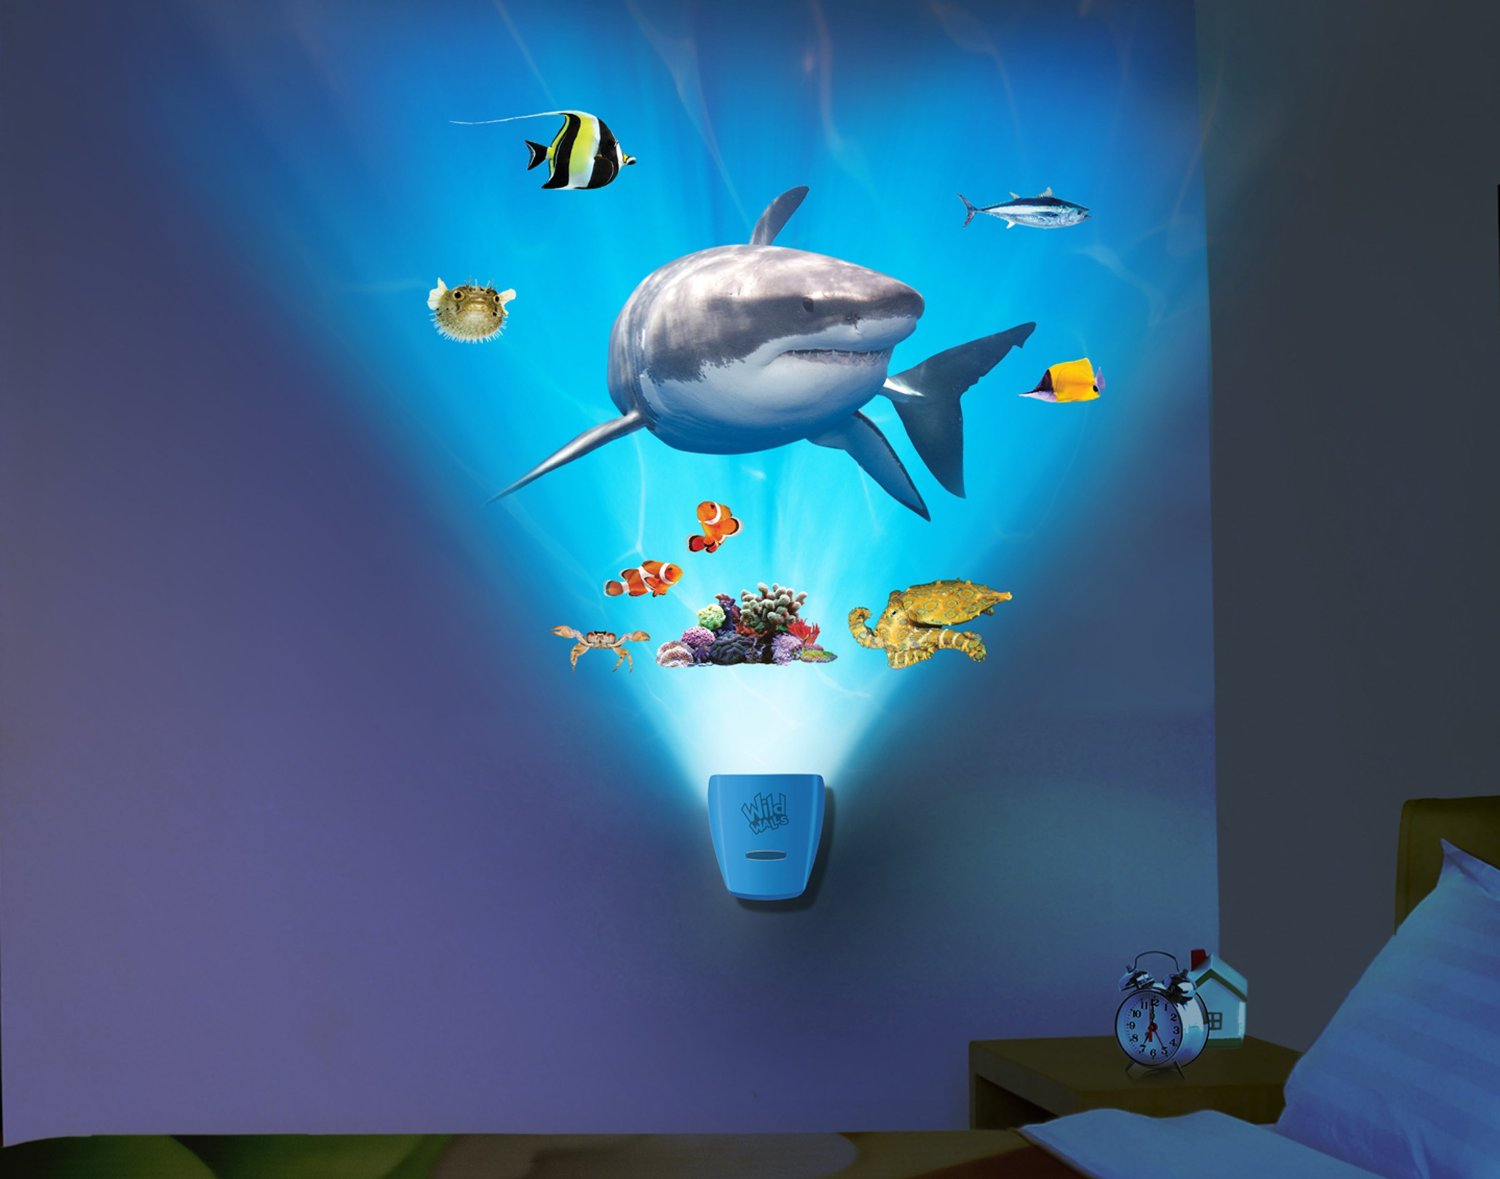 Shark Encounter Wall Projector Awesome Stuff To Buy